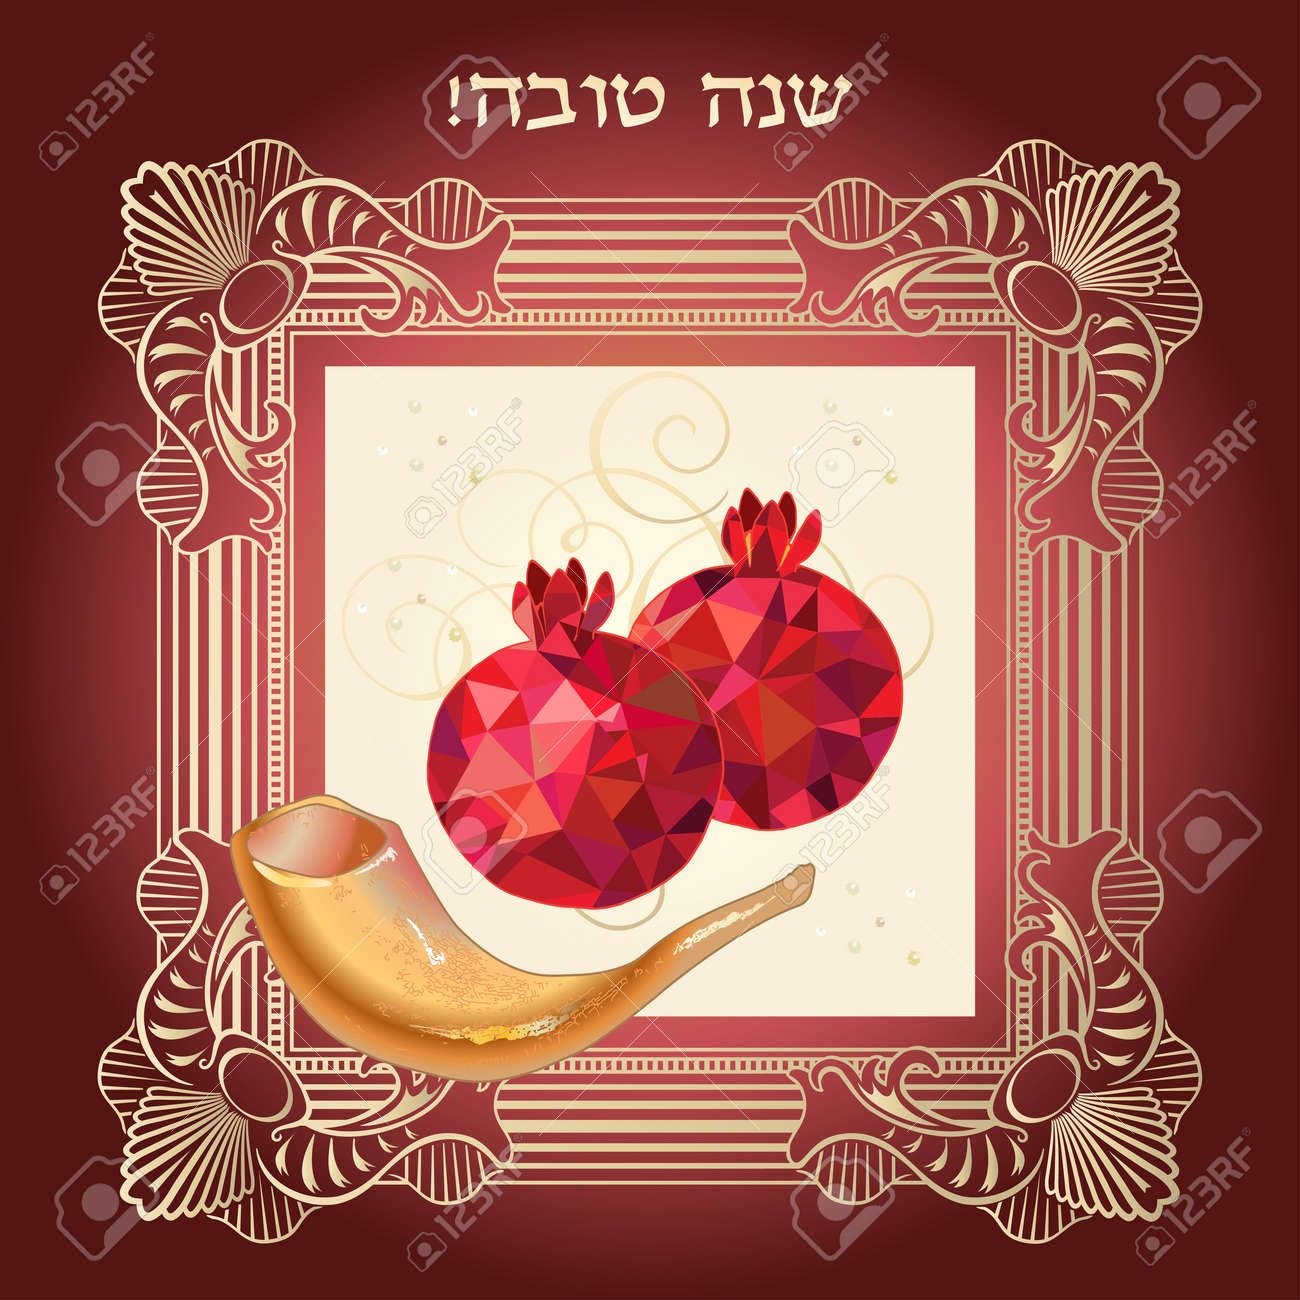 Rosh hashana card jewish new year greeting text shana tova rosh hashana card jewish new year greeting text shana tova on hebrew happy m4hsunfo